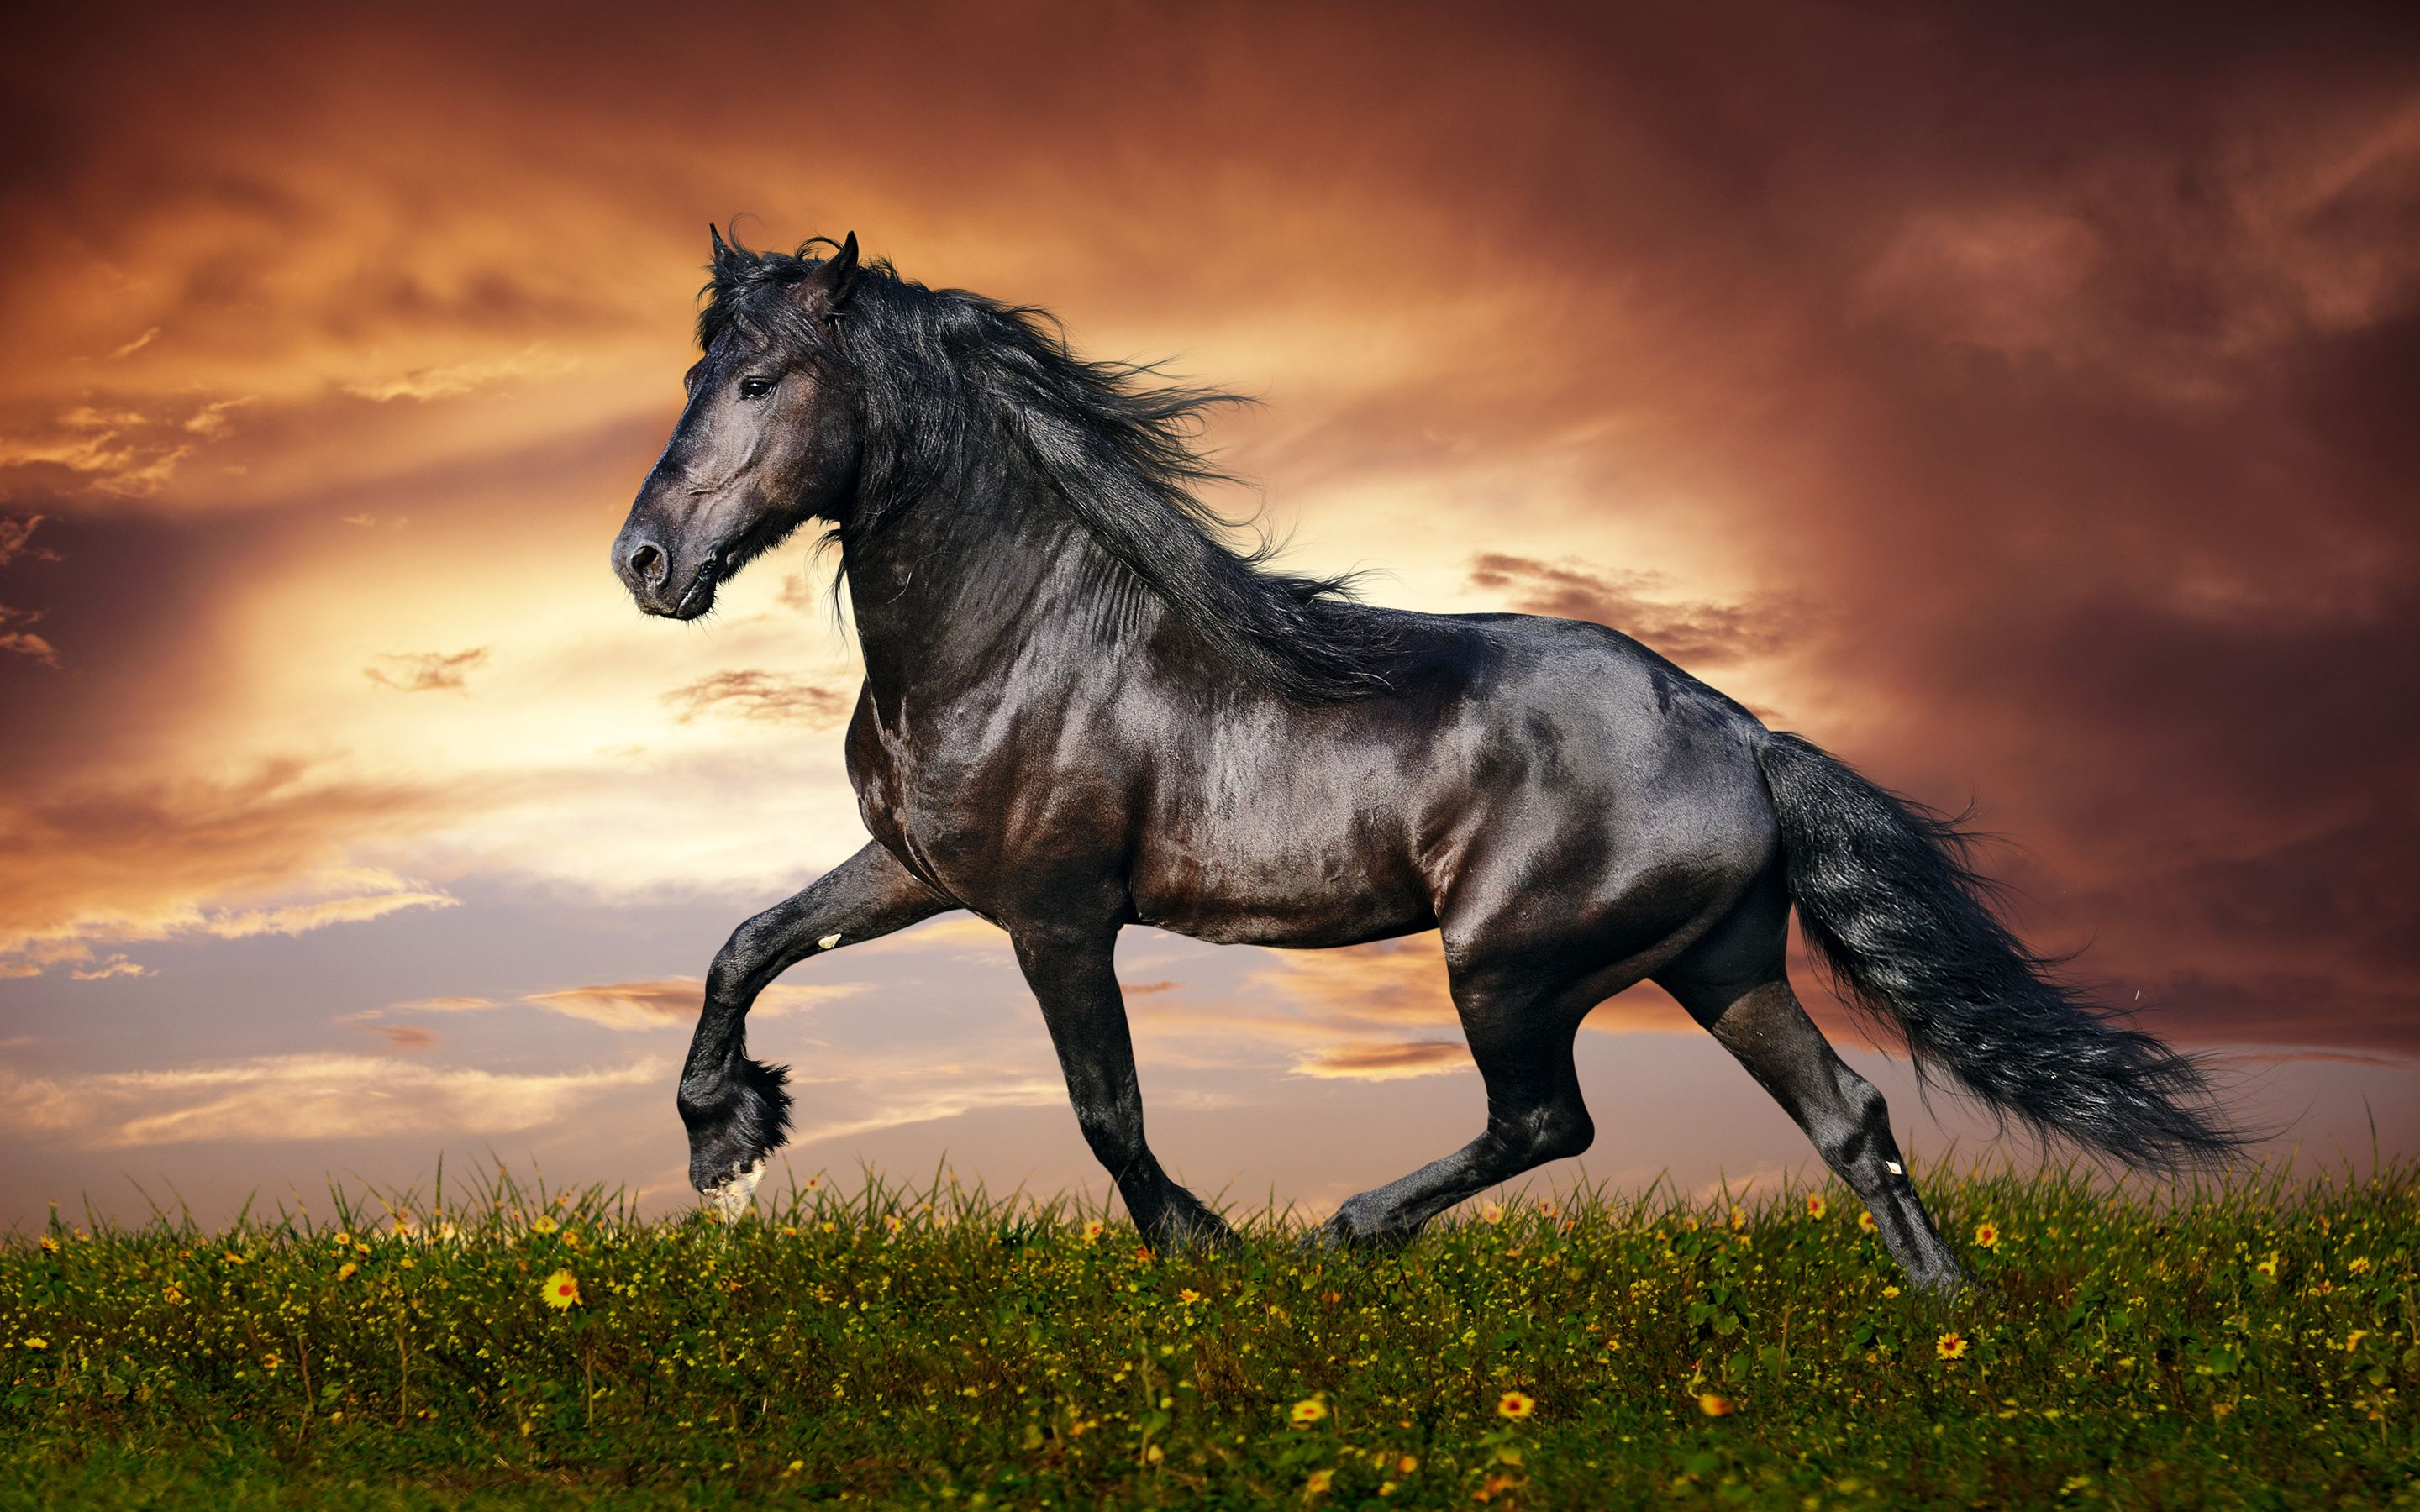 35 most beautiful horse pictures and images horses real for Beautiful horses